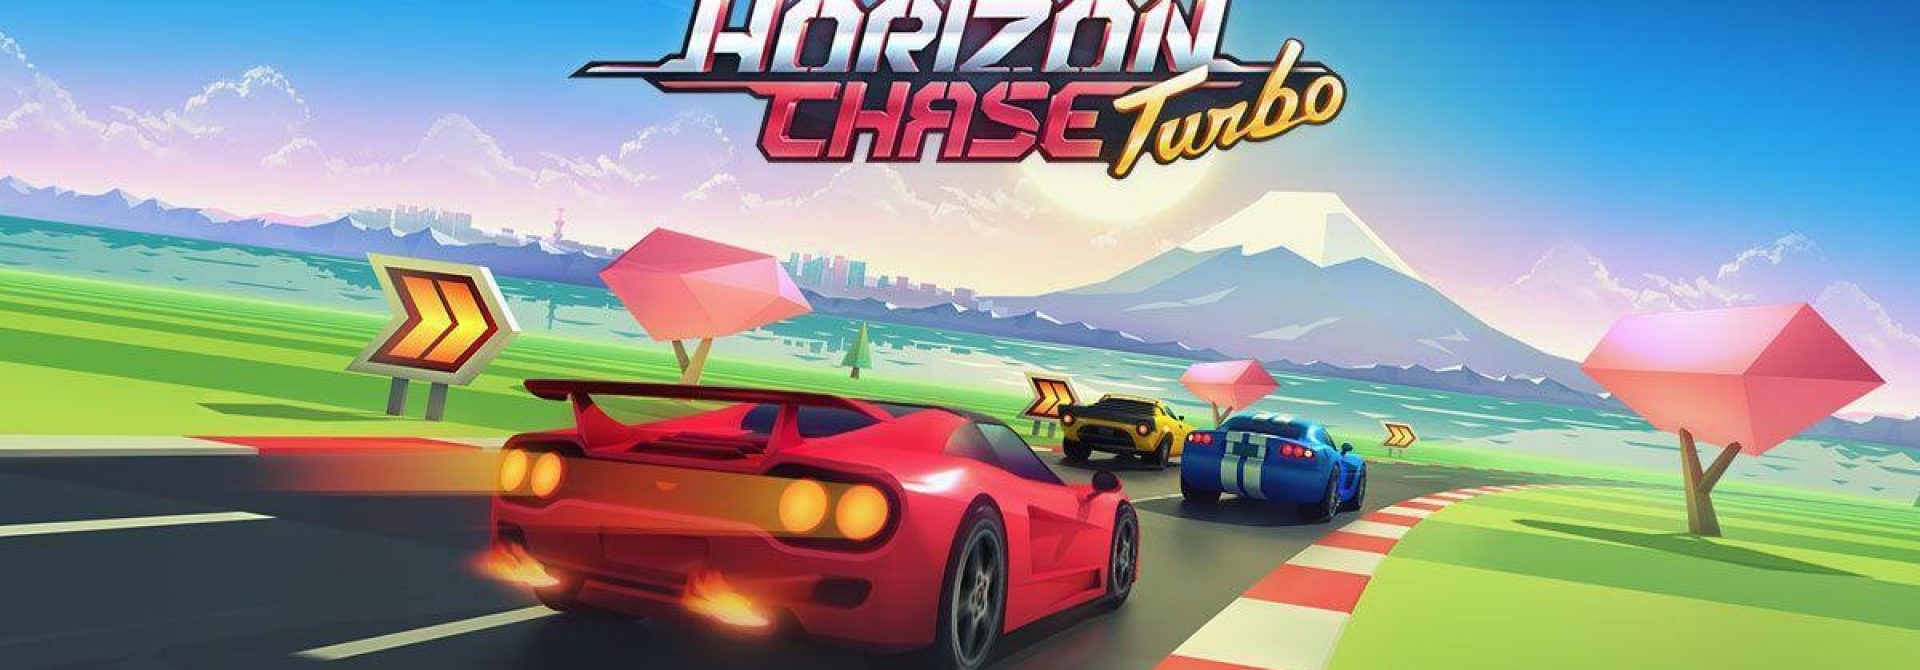 Horizon Chase Turbo Gets 2019 Content Roadmap